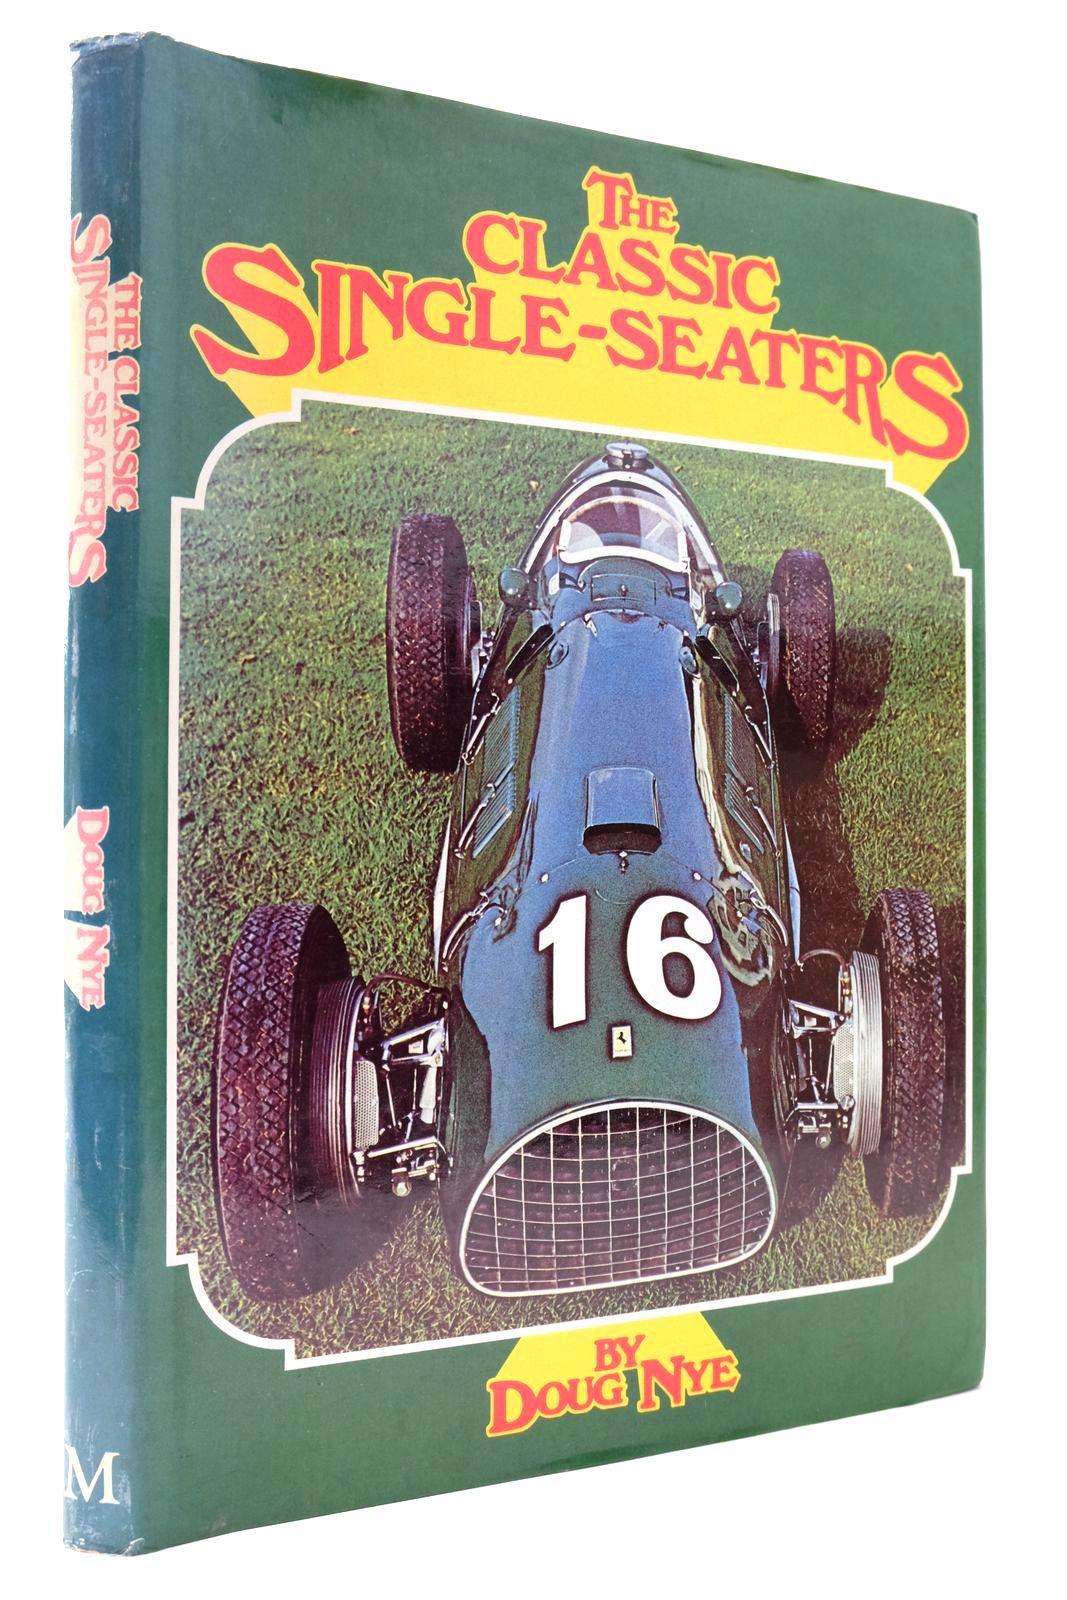 Photo of THE CLASSIC SINGLE-SEATERS GREAT RACING CARS OF THE DONINGTON COLLECTION written by Nye, Doug Goddard, Geoffrey published by MacMillan (STOCK CODE: 2133461)  for sale by Stella & Rose's Books